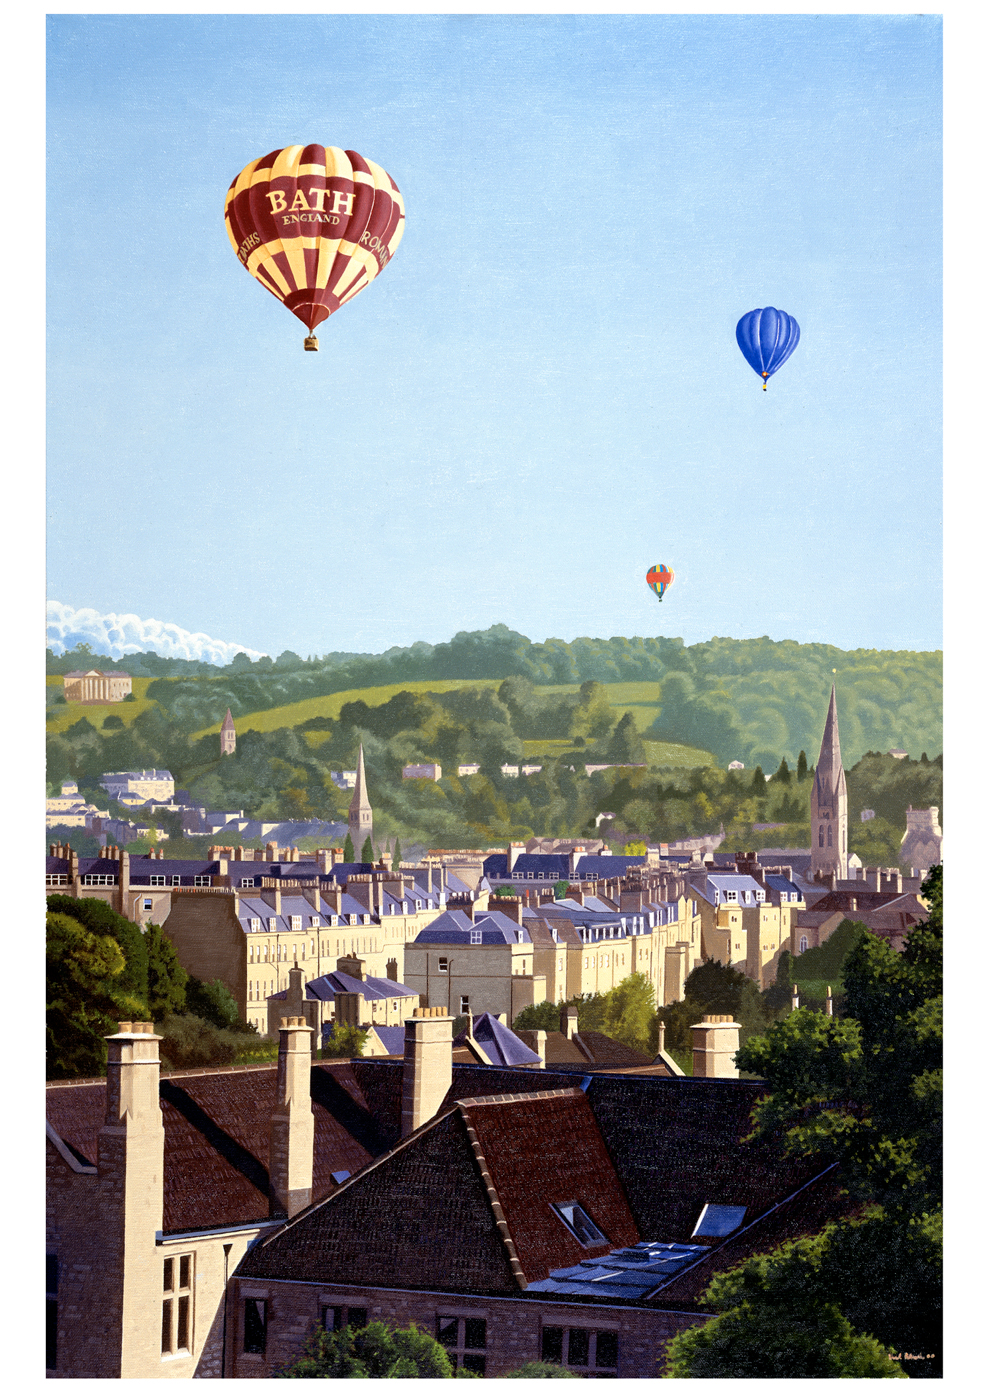 Balloons Over Bath